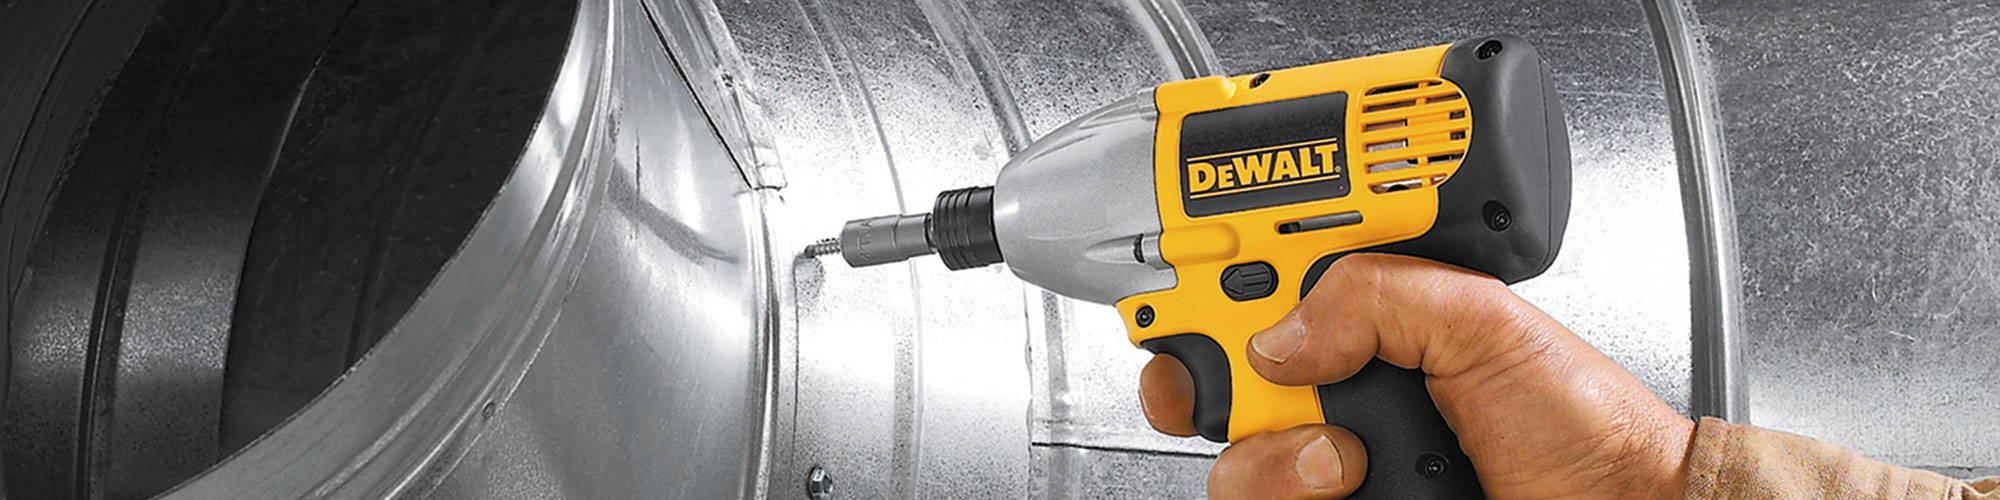 what is an impact driver used for?